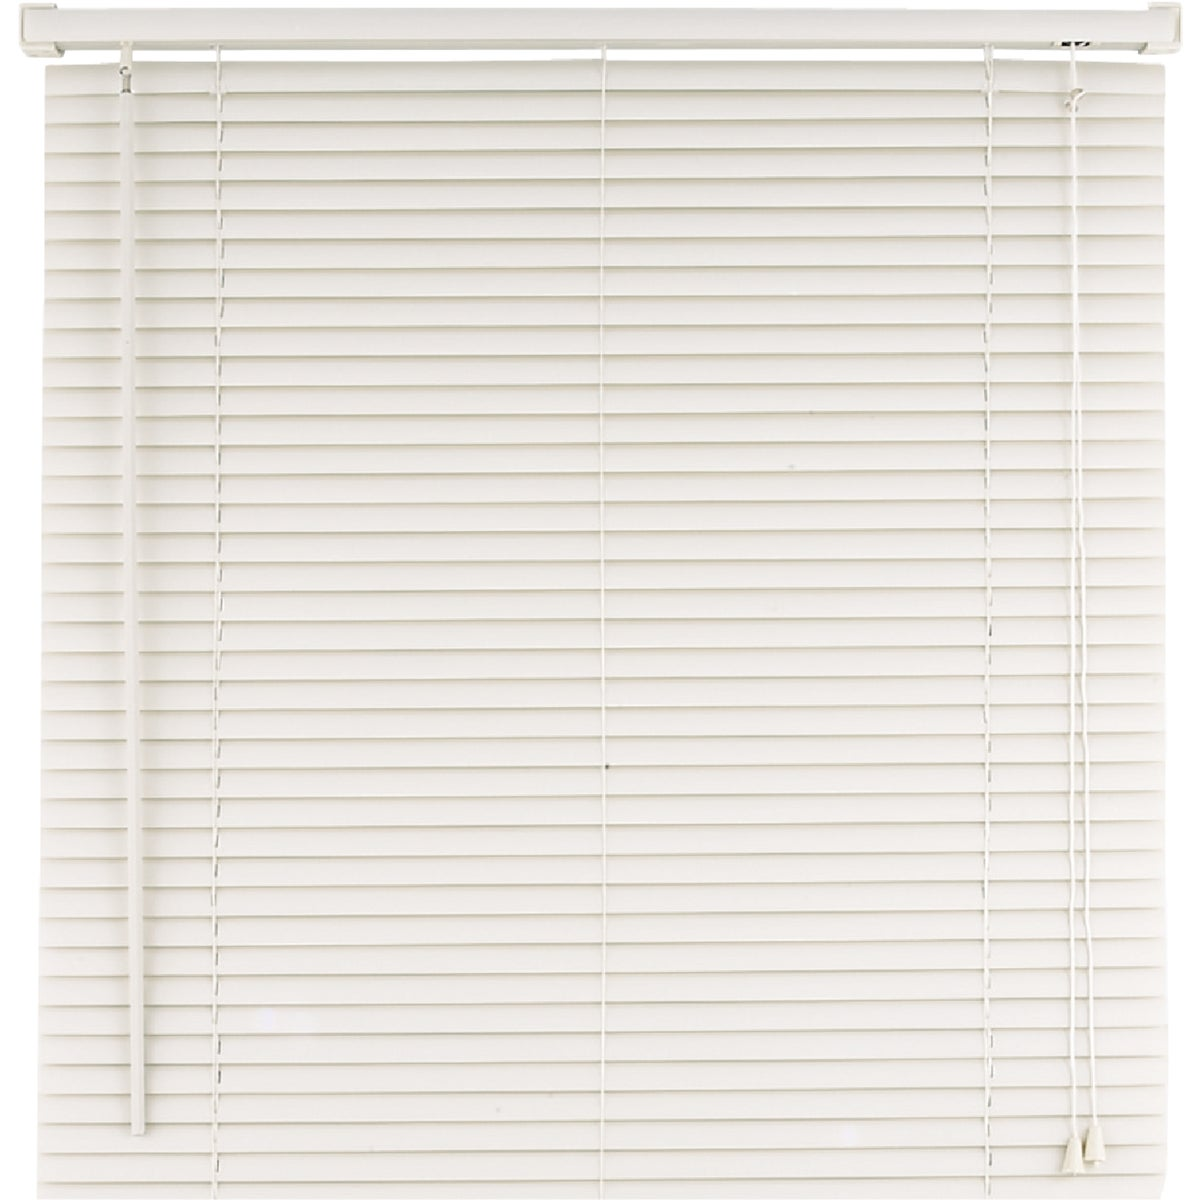 60X64 WHITE MINI BLIND - 15298 by Lotus Wind Incom